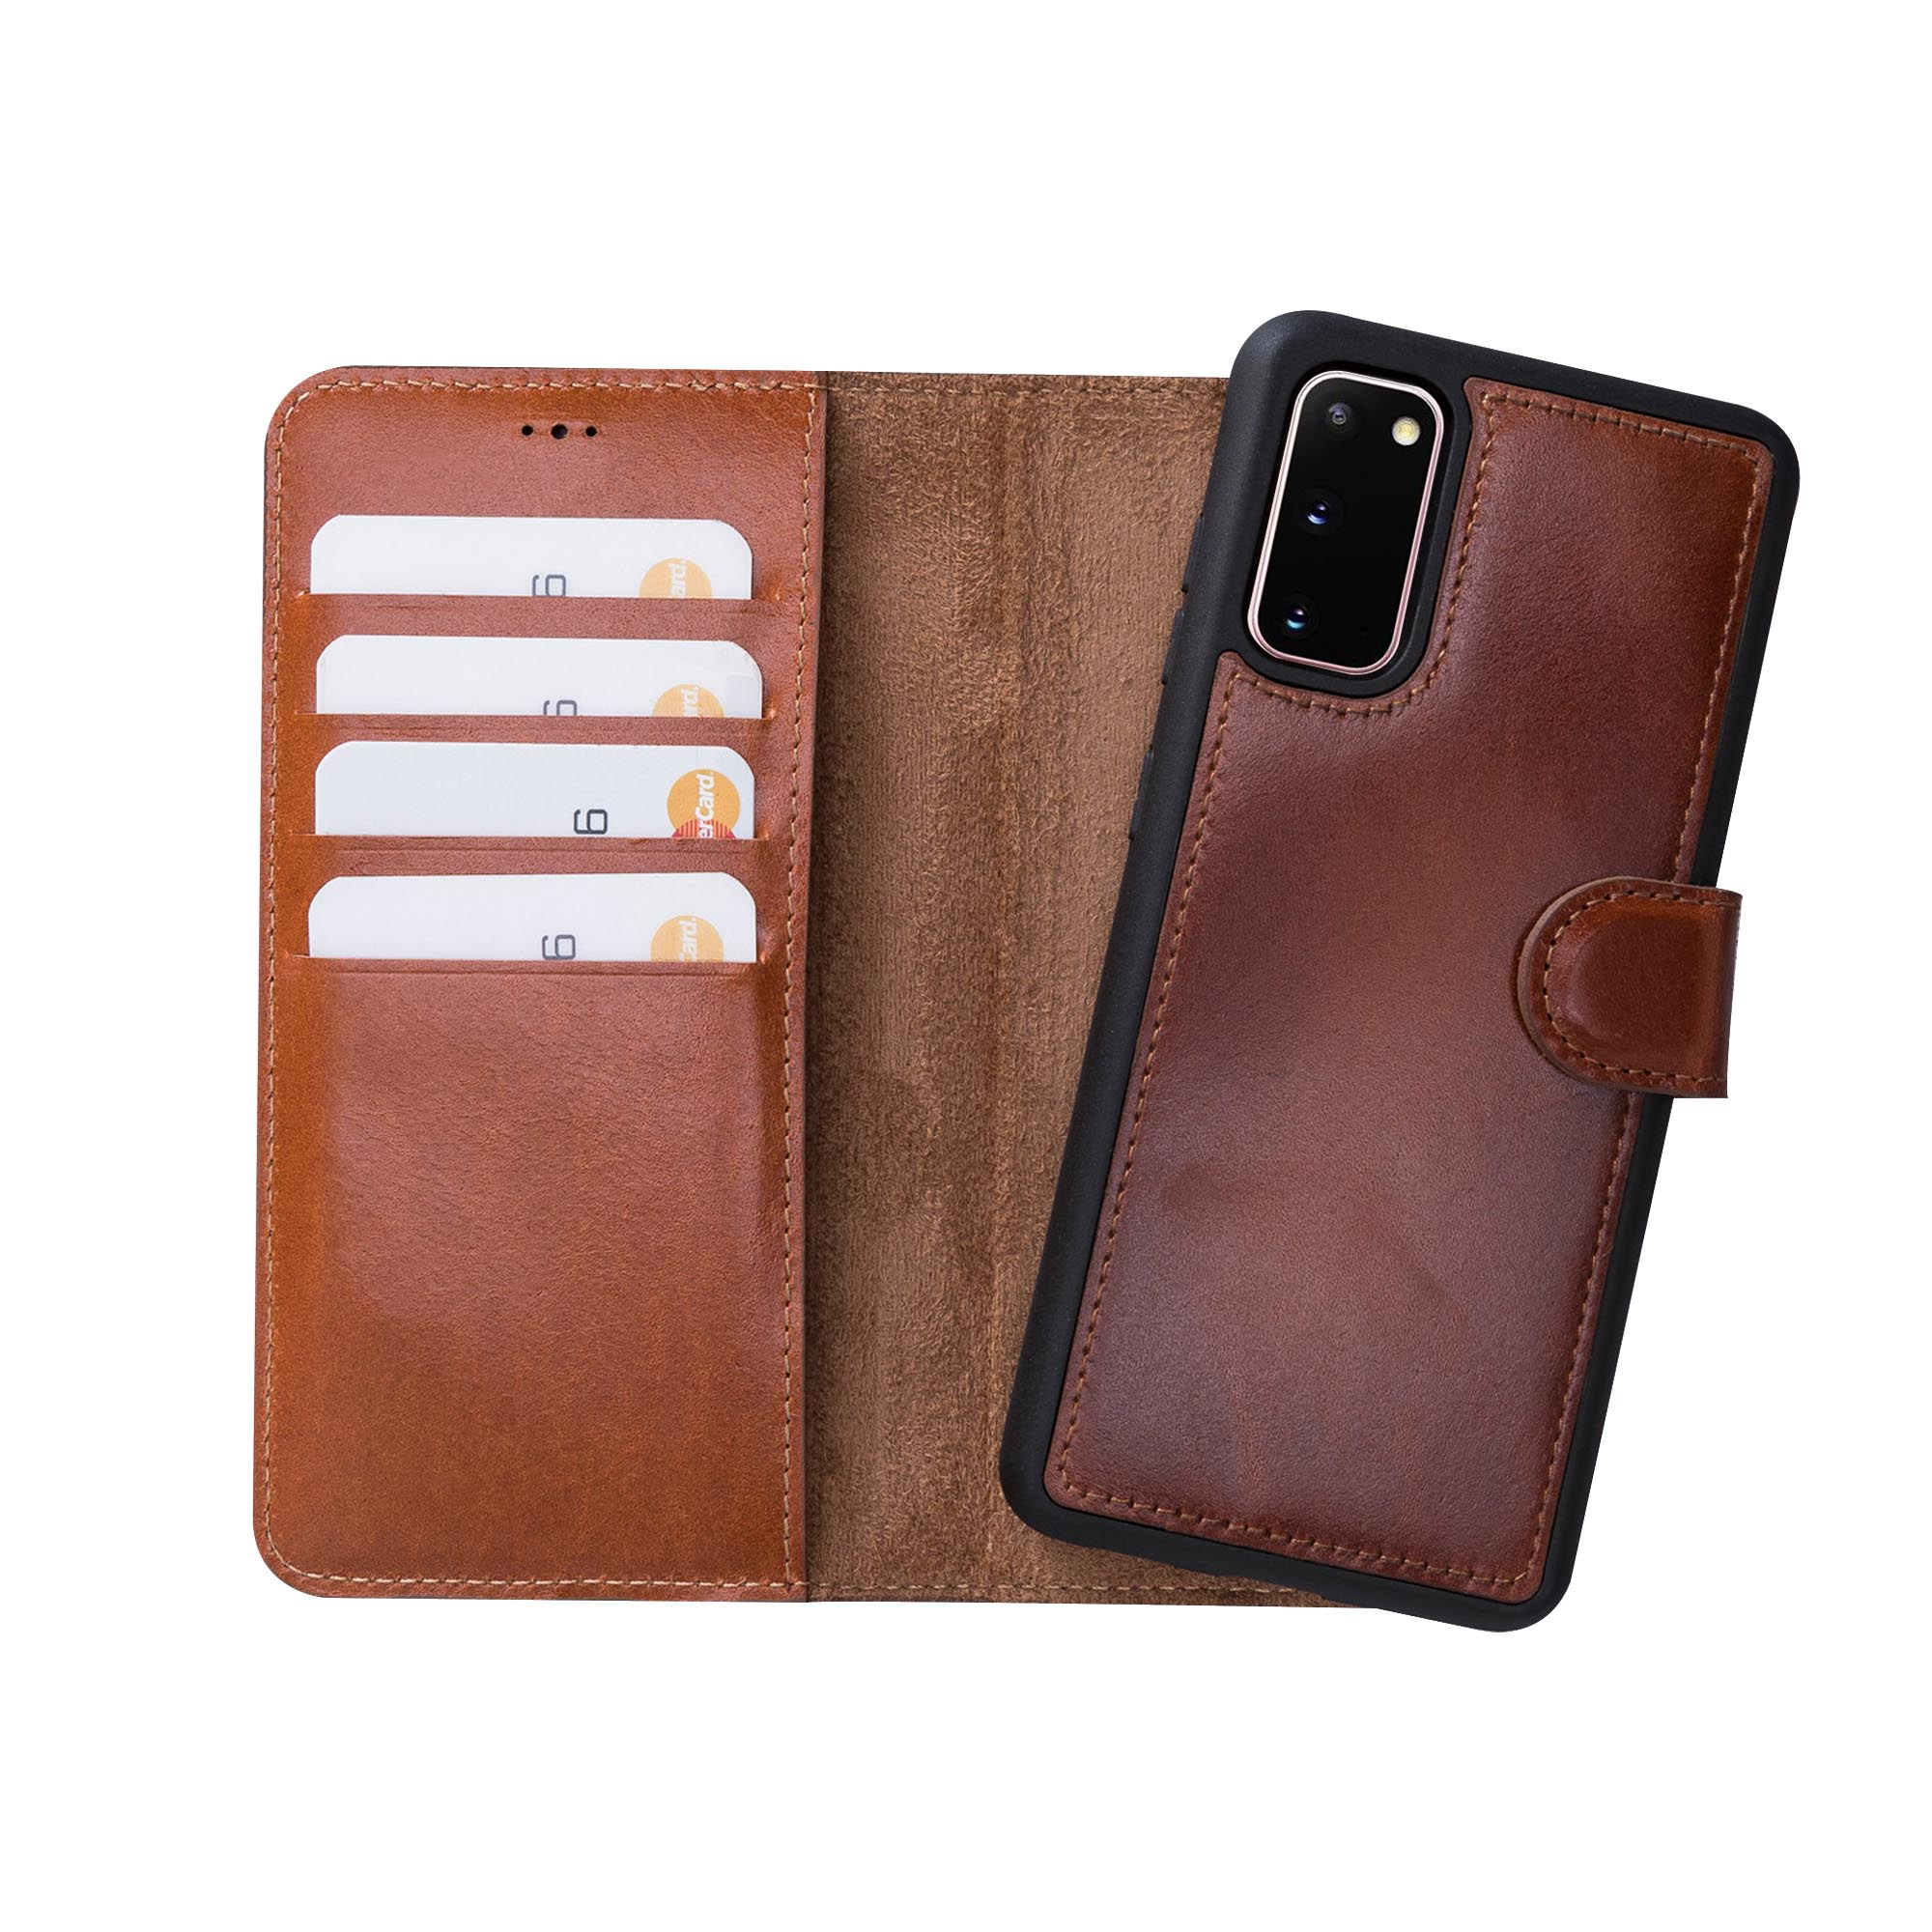 "Magic Magnetic Detachable Leather Wallet Case for Samsung Galaxy S20 (6.2"") - EFFECT BROWN - saracleather"